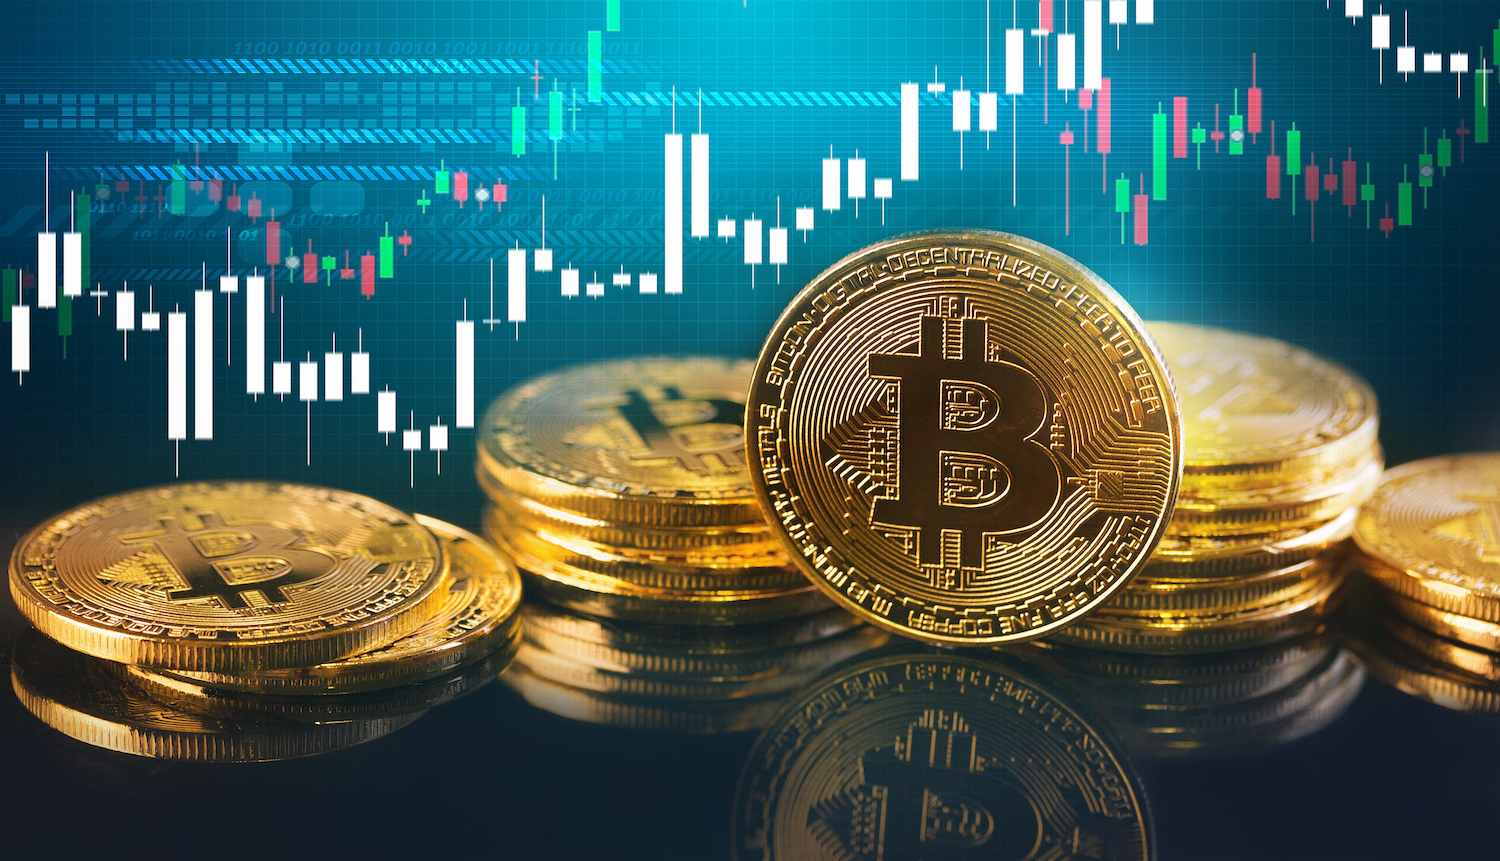 Bitcoin has lost 24 Billion US dollars on the stock Market